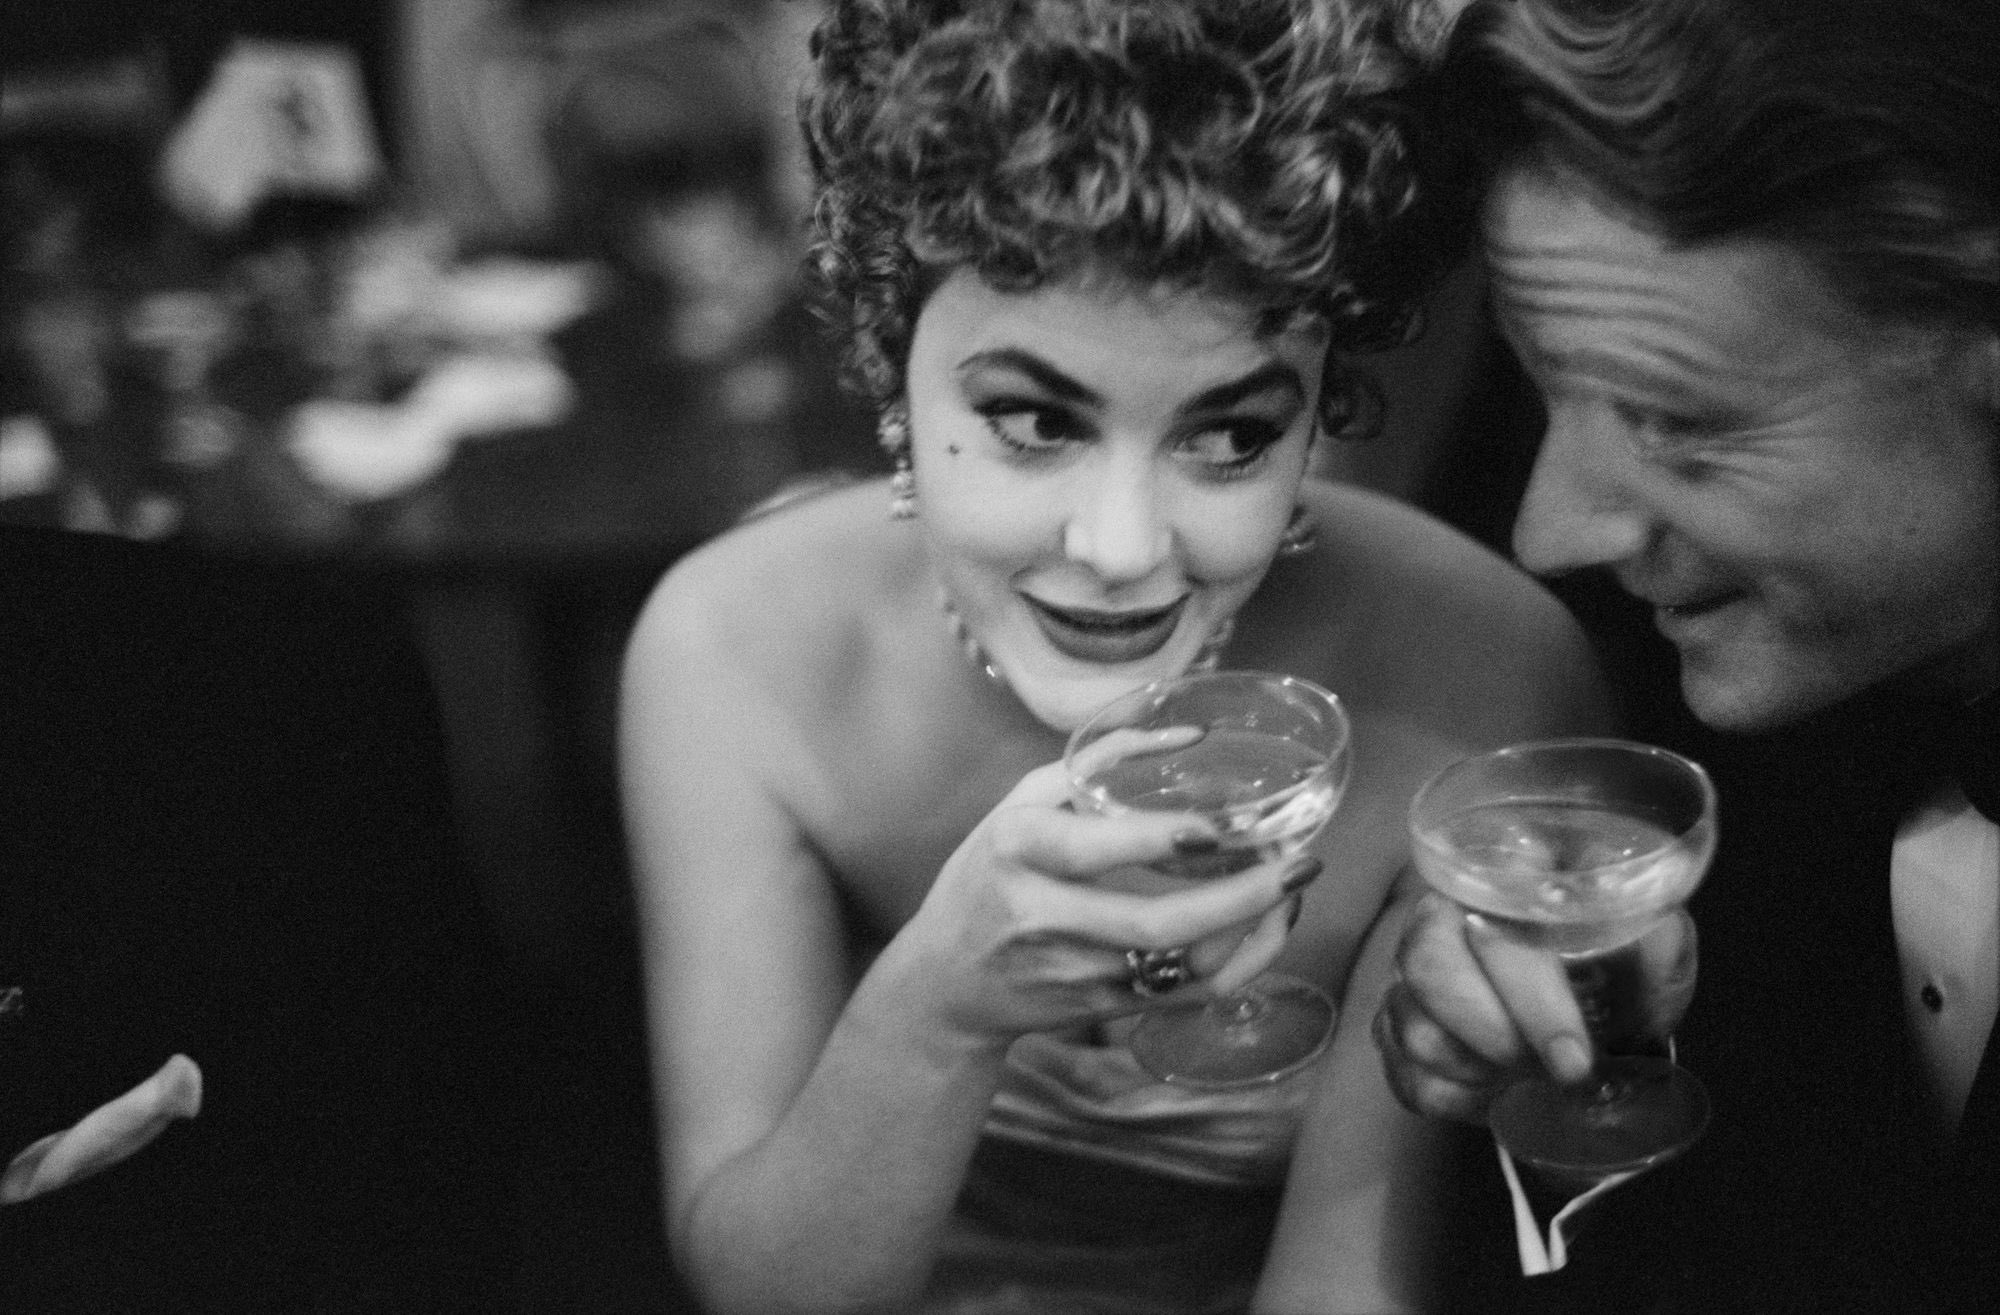 Gary Winogrand, two with cocktails, journal of wild culture